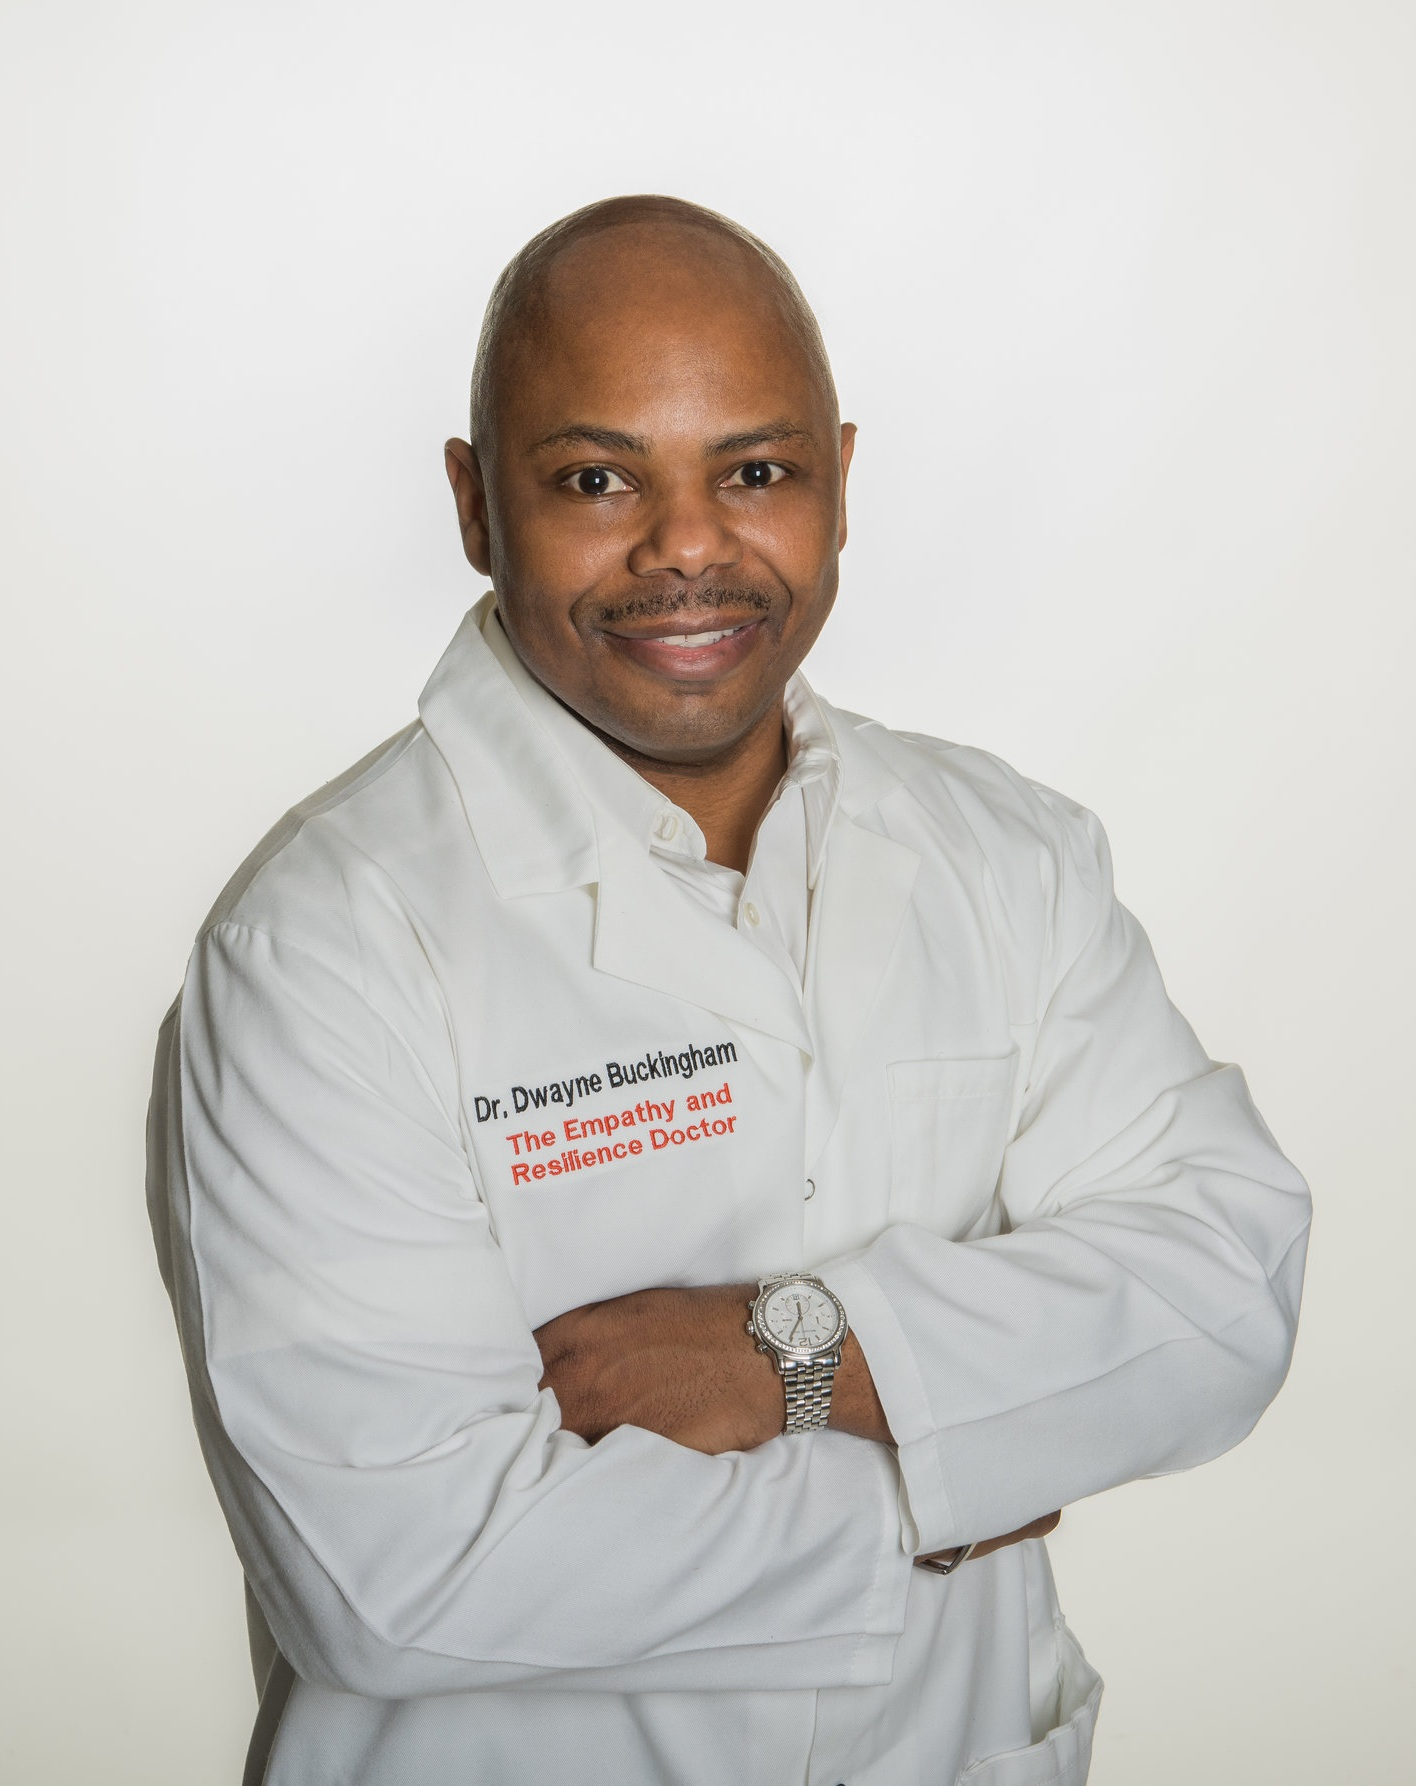 Dr. Dwayne L. Buckingham - Dr. Dwayne L. Buckingham is the President and Chief Executive Officer of R.E.A.L. Horizons Consulting Solutions, LLC, founder of the You Deserve More women's empowerment movement and President of the Empathy and Resilience Center, a nonprofit 501 (c) (3).As a highly acclaimed international clinical psychotherapist, decorated veteran, relationship expert, resilience guru, author, film producer, coach and corporate consultant with over 20 years of experience, Dr. Buckingham has helped over 30,000 individuals, couples, groups, and families worldwide overcome adversity, hardship and emotional distress by providing superb psychological assessments, mental health treatment and psycho-educational training. In recognition of his expertise, he has been featured on NBC, ABC, Fox 2 News, ESSENCE, The CW 11, The Daily Drum, Huffington Post, and numerous other media outlets.In addition to being a highly acclaimed international clinical psychotherapist, Dr. Buckingham is also a successful entrepreneur. In 2017 he received the distinct destination of DMV Entrepreneur of the Year from Wes Adams' State's Attorney Office, Anne Arundel County, Maryland.Dr. Buckingham has provided keynote addresses, consulting services and training for numerous organizations including Walter Reed National Military Medical Center, United States Public Health Services (USPHS), Department of Homeland Security (DHS), Health Resource and Service Administration (HRSA), United States Air Force, First Baptist Church of Glenarden, Habitat for Humanity, St. John's Baptist Church, The Bowman Francis Ministry, and Kappa Alpha Psi Fraternity, Inc.He holds a B.S.W. in Social Work from Jackson State University, a M.S.W in Clinical Social Work from Michigan State University, a Ph.D. in Human Services from Capella University and is Board Certified by the American Board of Examiners in Clinical Social Work. He is also an active member of the National Association of Social Workers and Kappa Alp